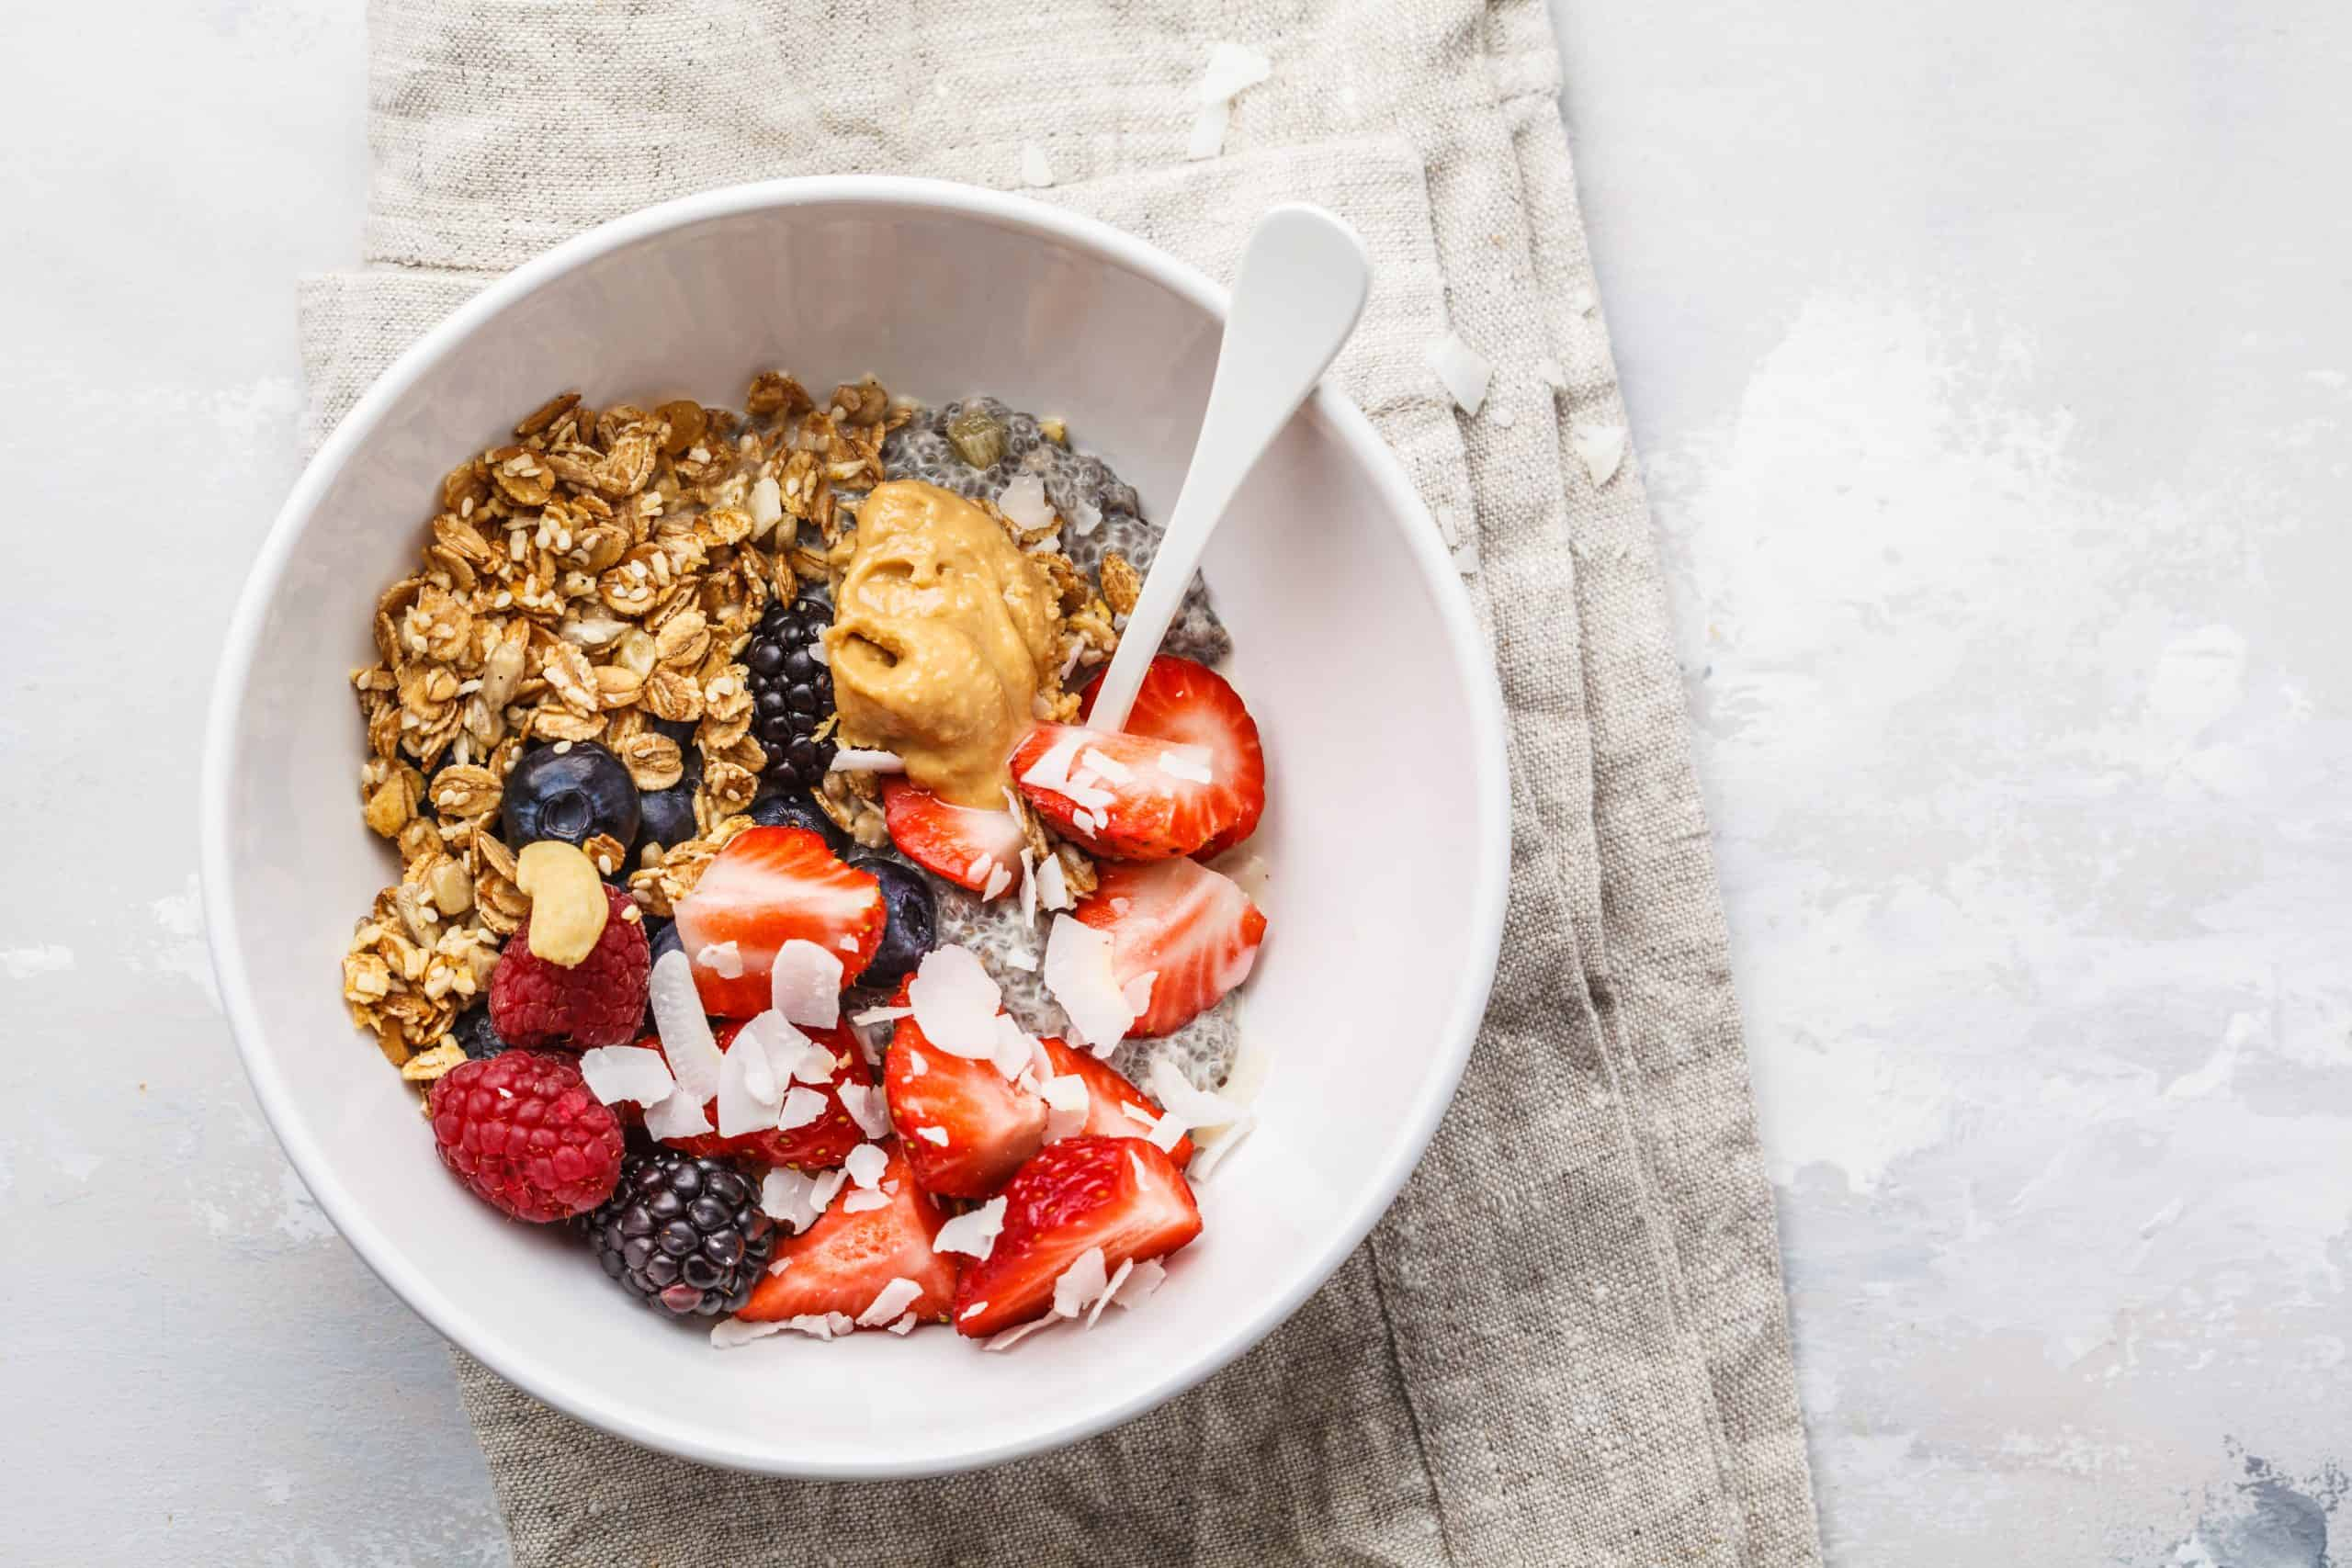 Berries, granola, milk, peanut butter breakfast in a white bowl. Healthy vegan food concept.